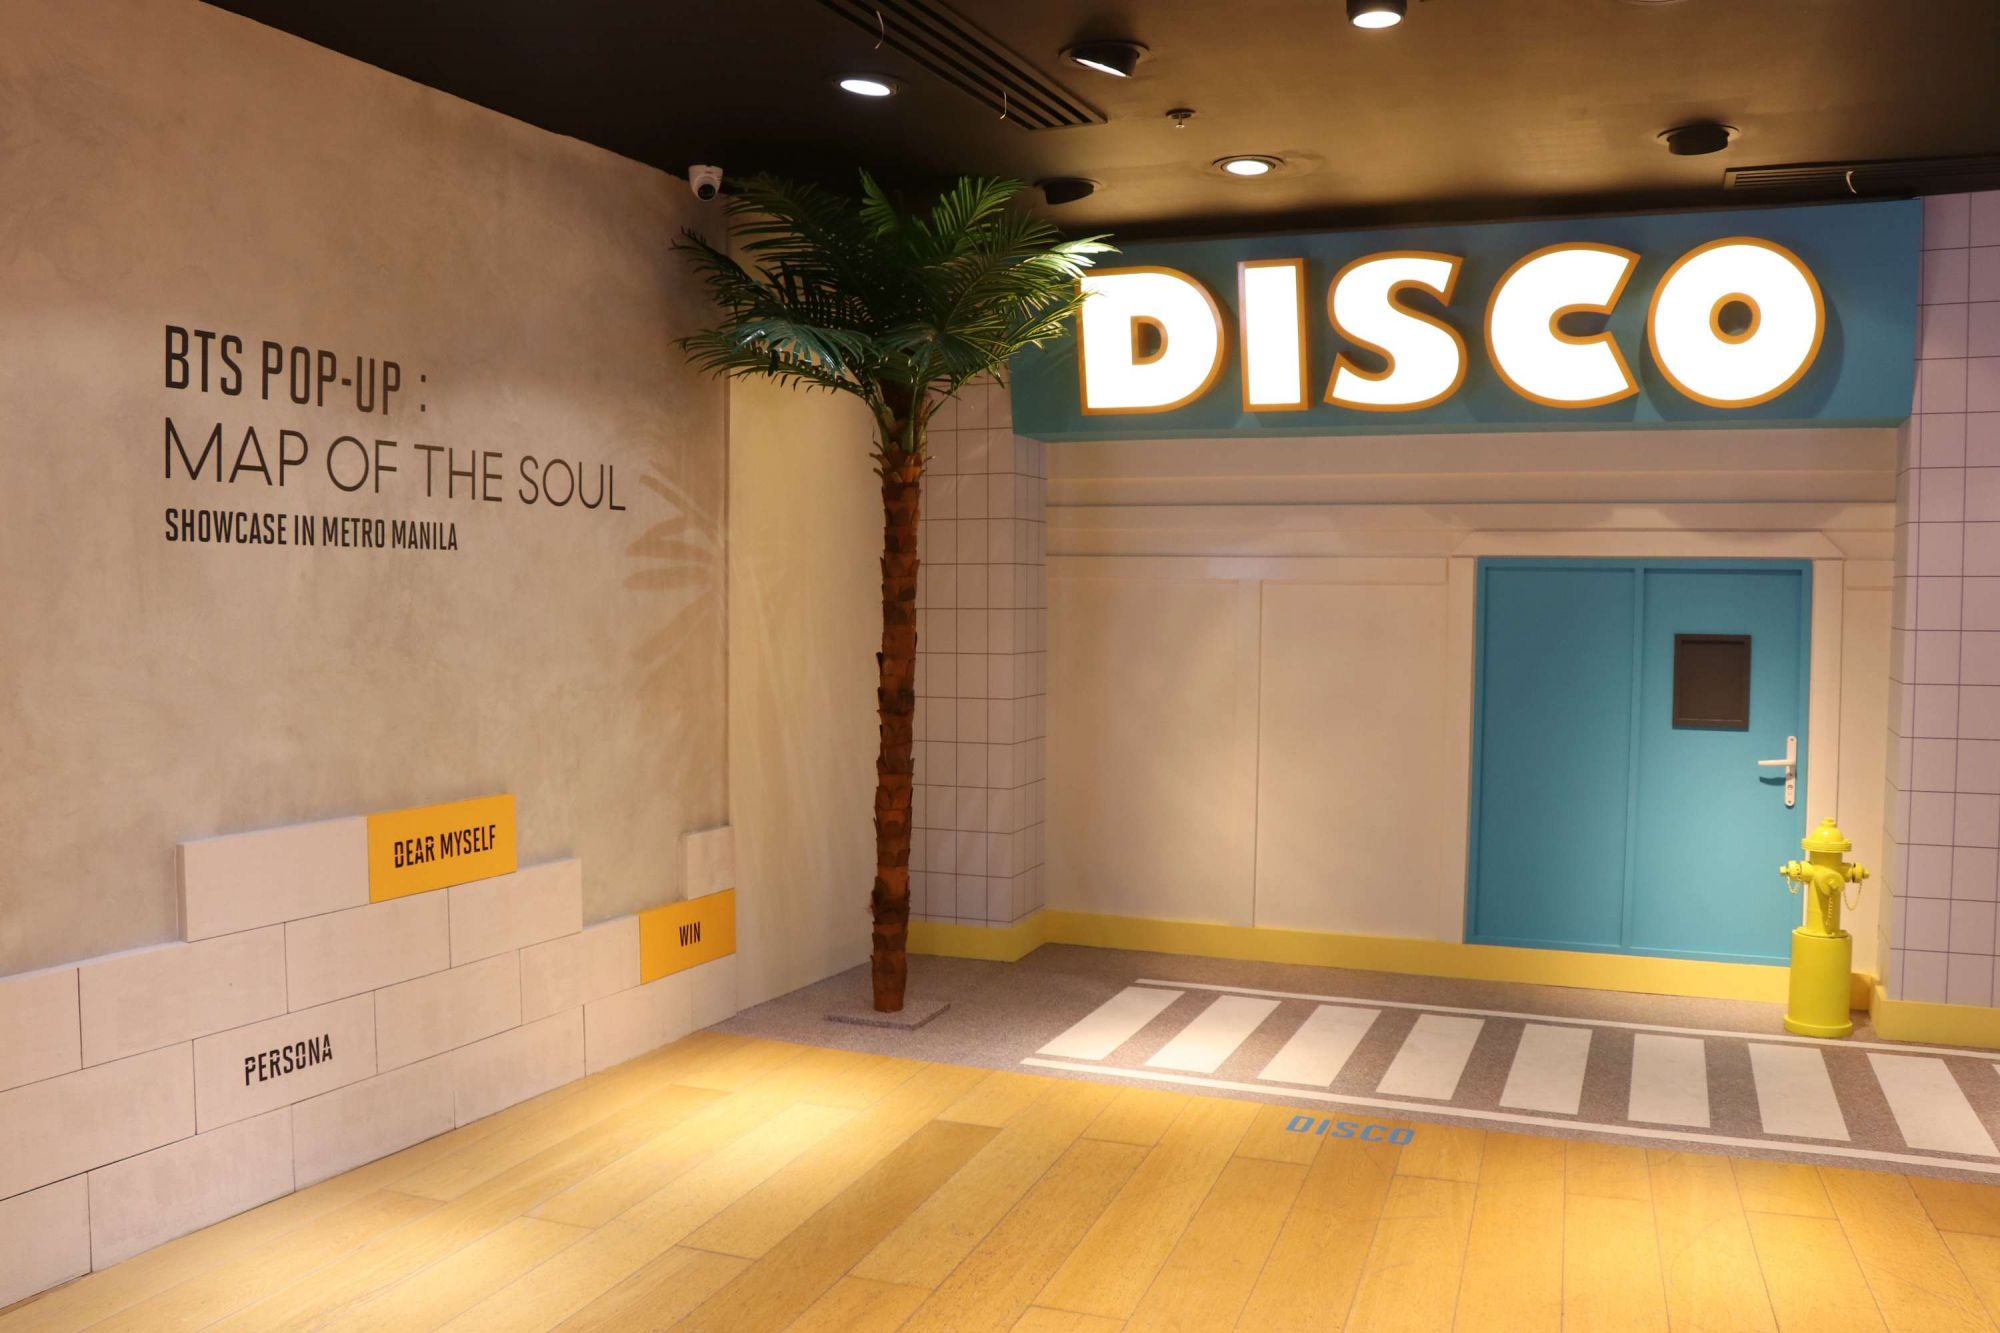 BTS Map of the Soul Pop-up at SM Megamall